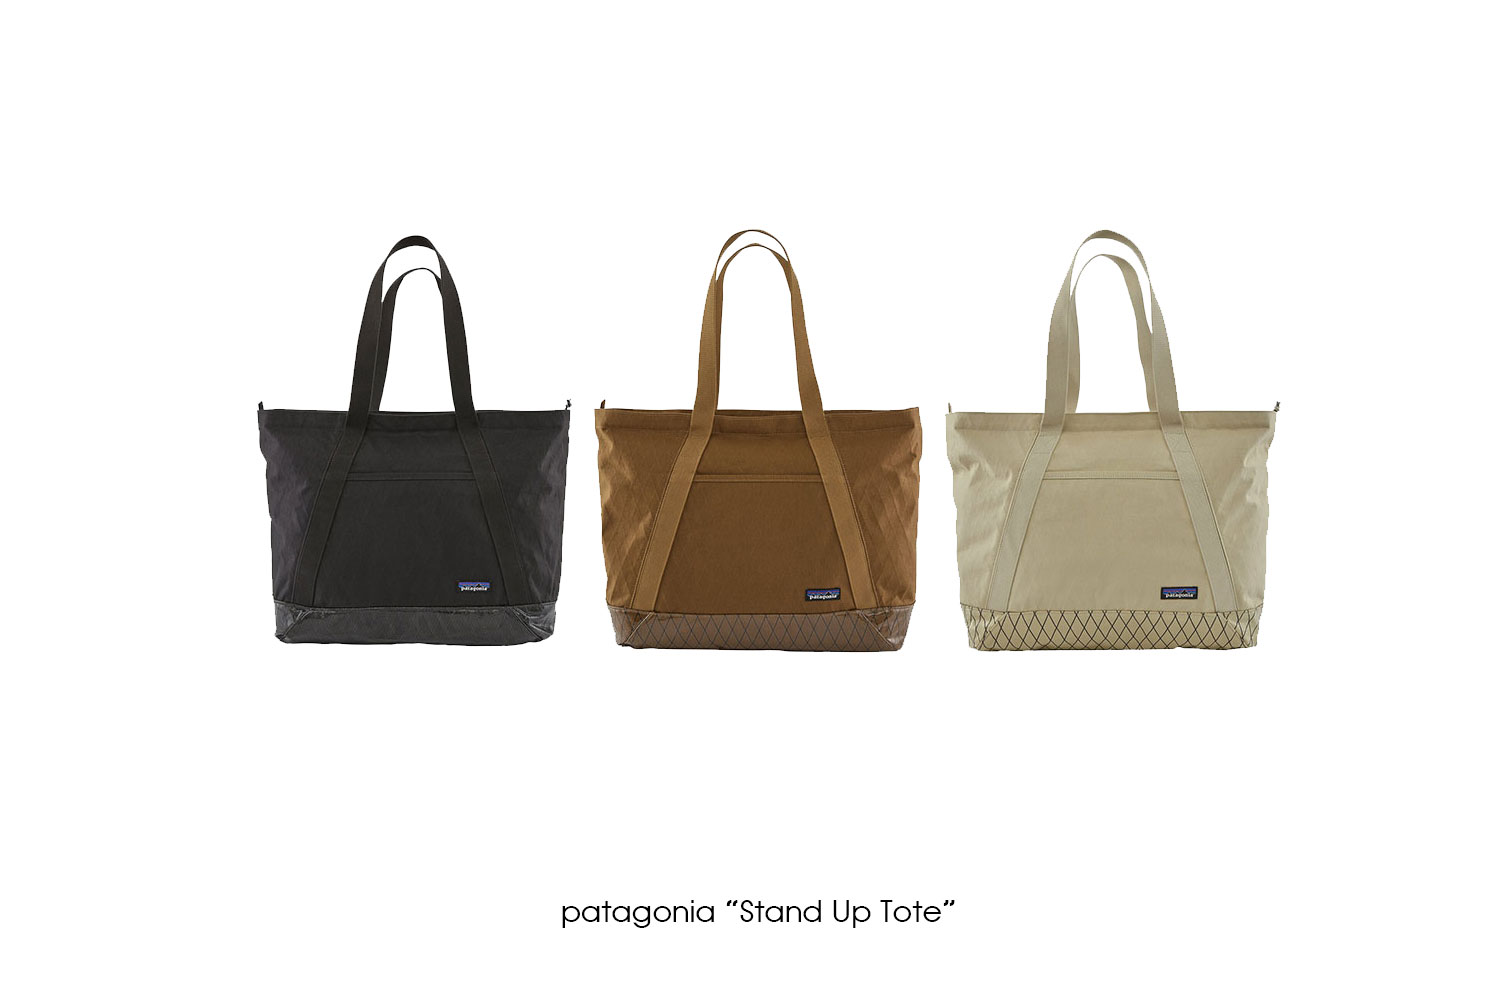 """patagonia """"Stand Up Tote"""""""